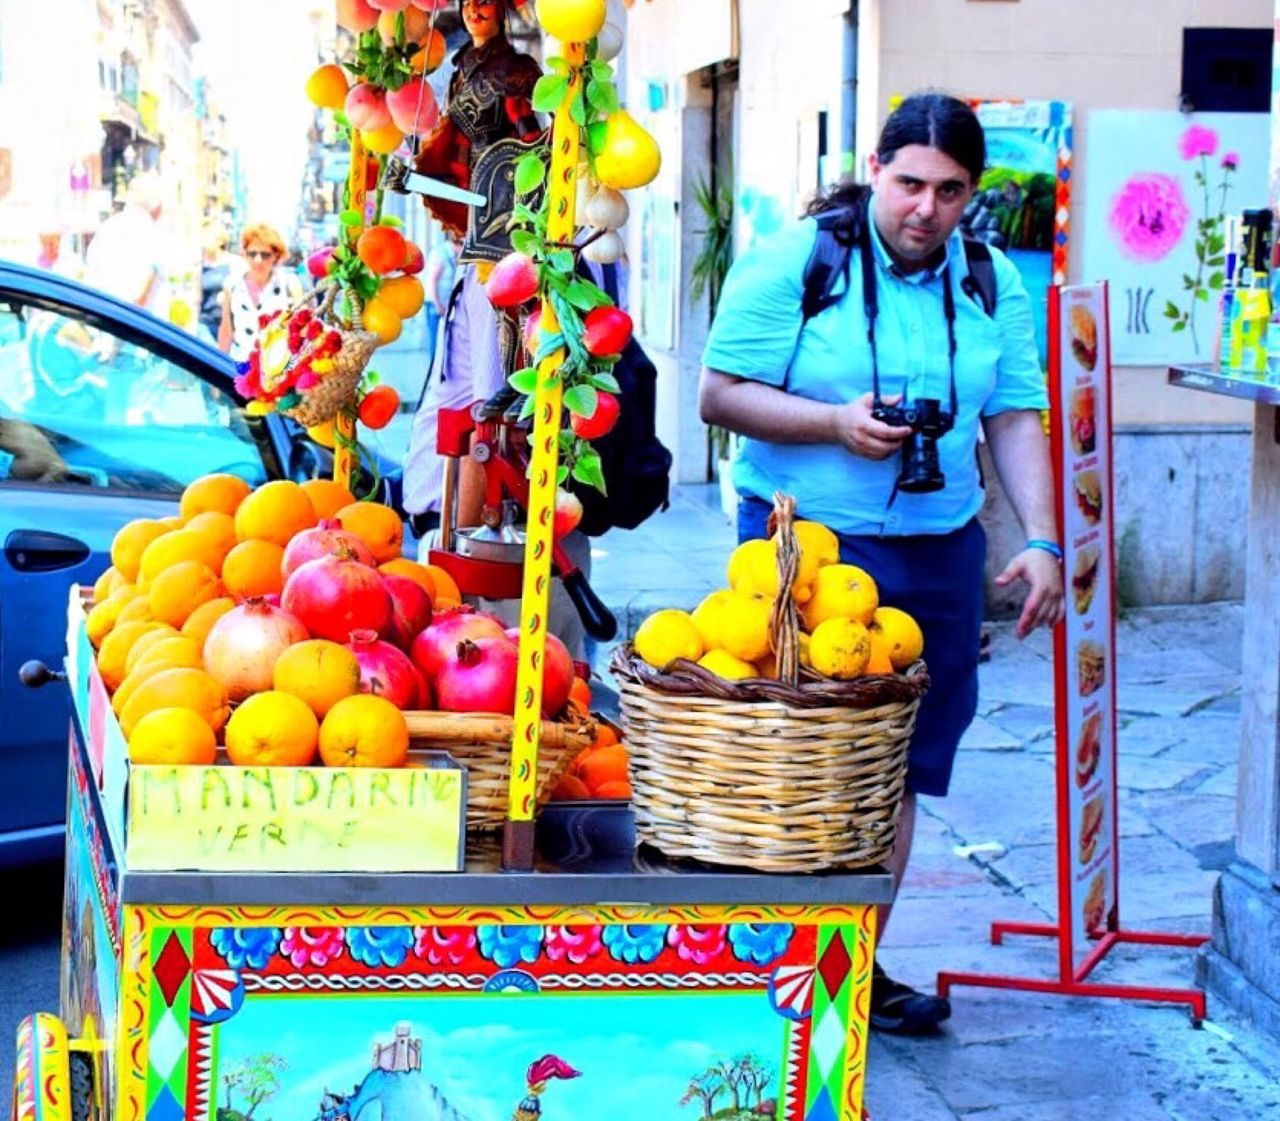 fruit, retail, market stall, small business, selling, real people, market, for sale, market vendor, food and drink, food, one person, day, outdoors, freshness, business, healthy eating, multi colored, occupation, working, supermarket, people